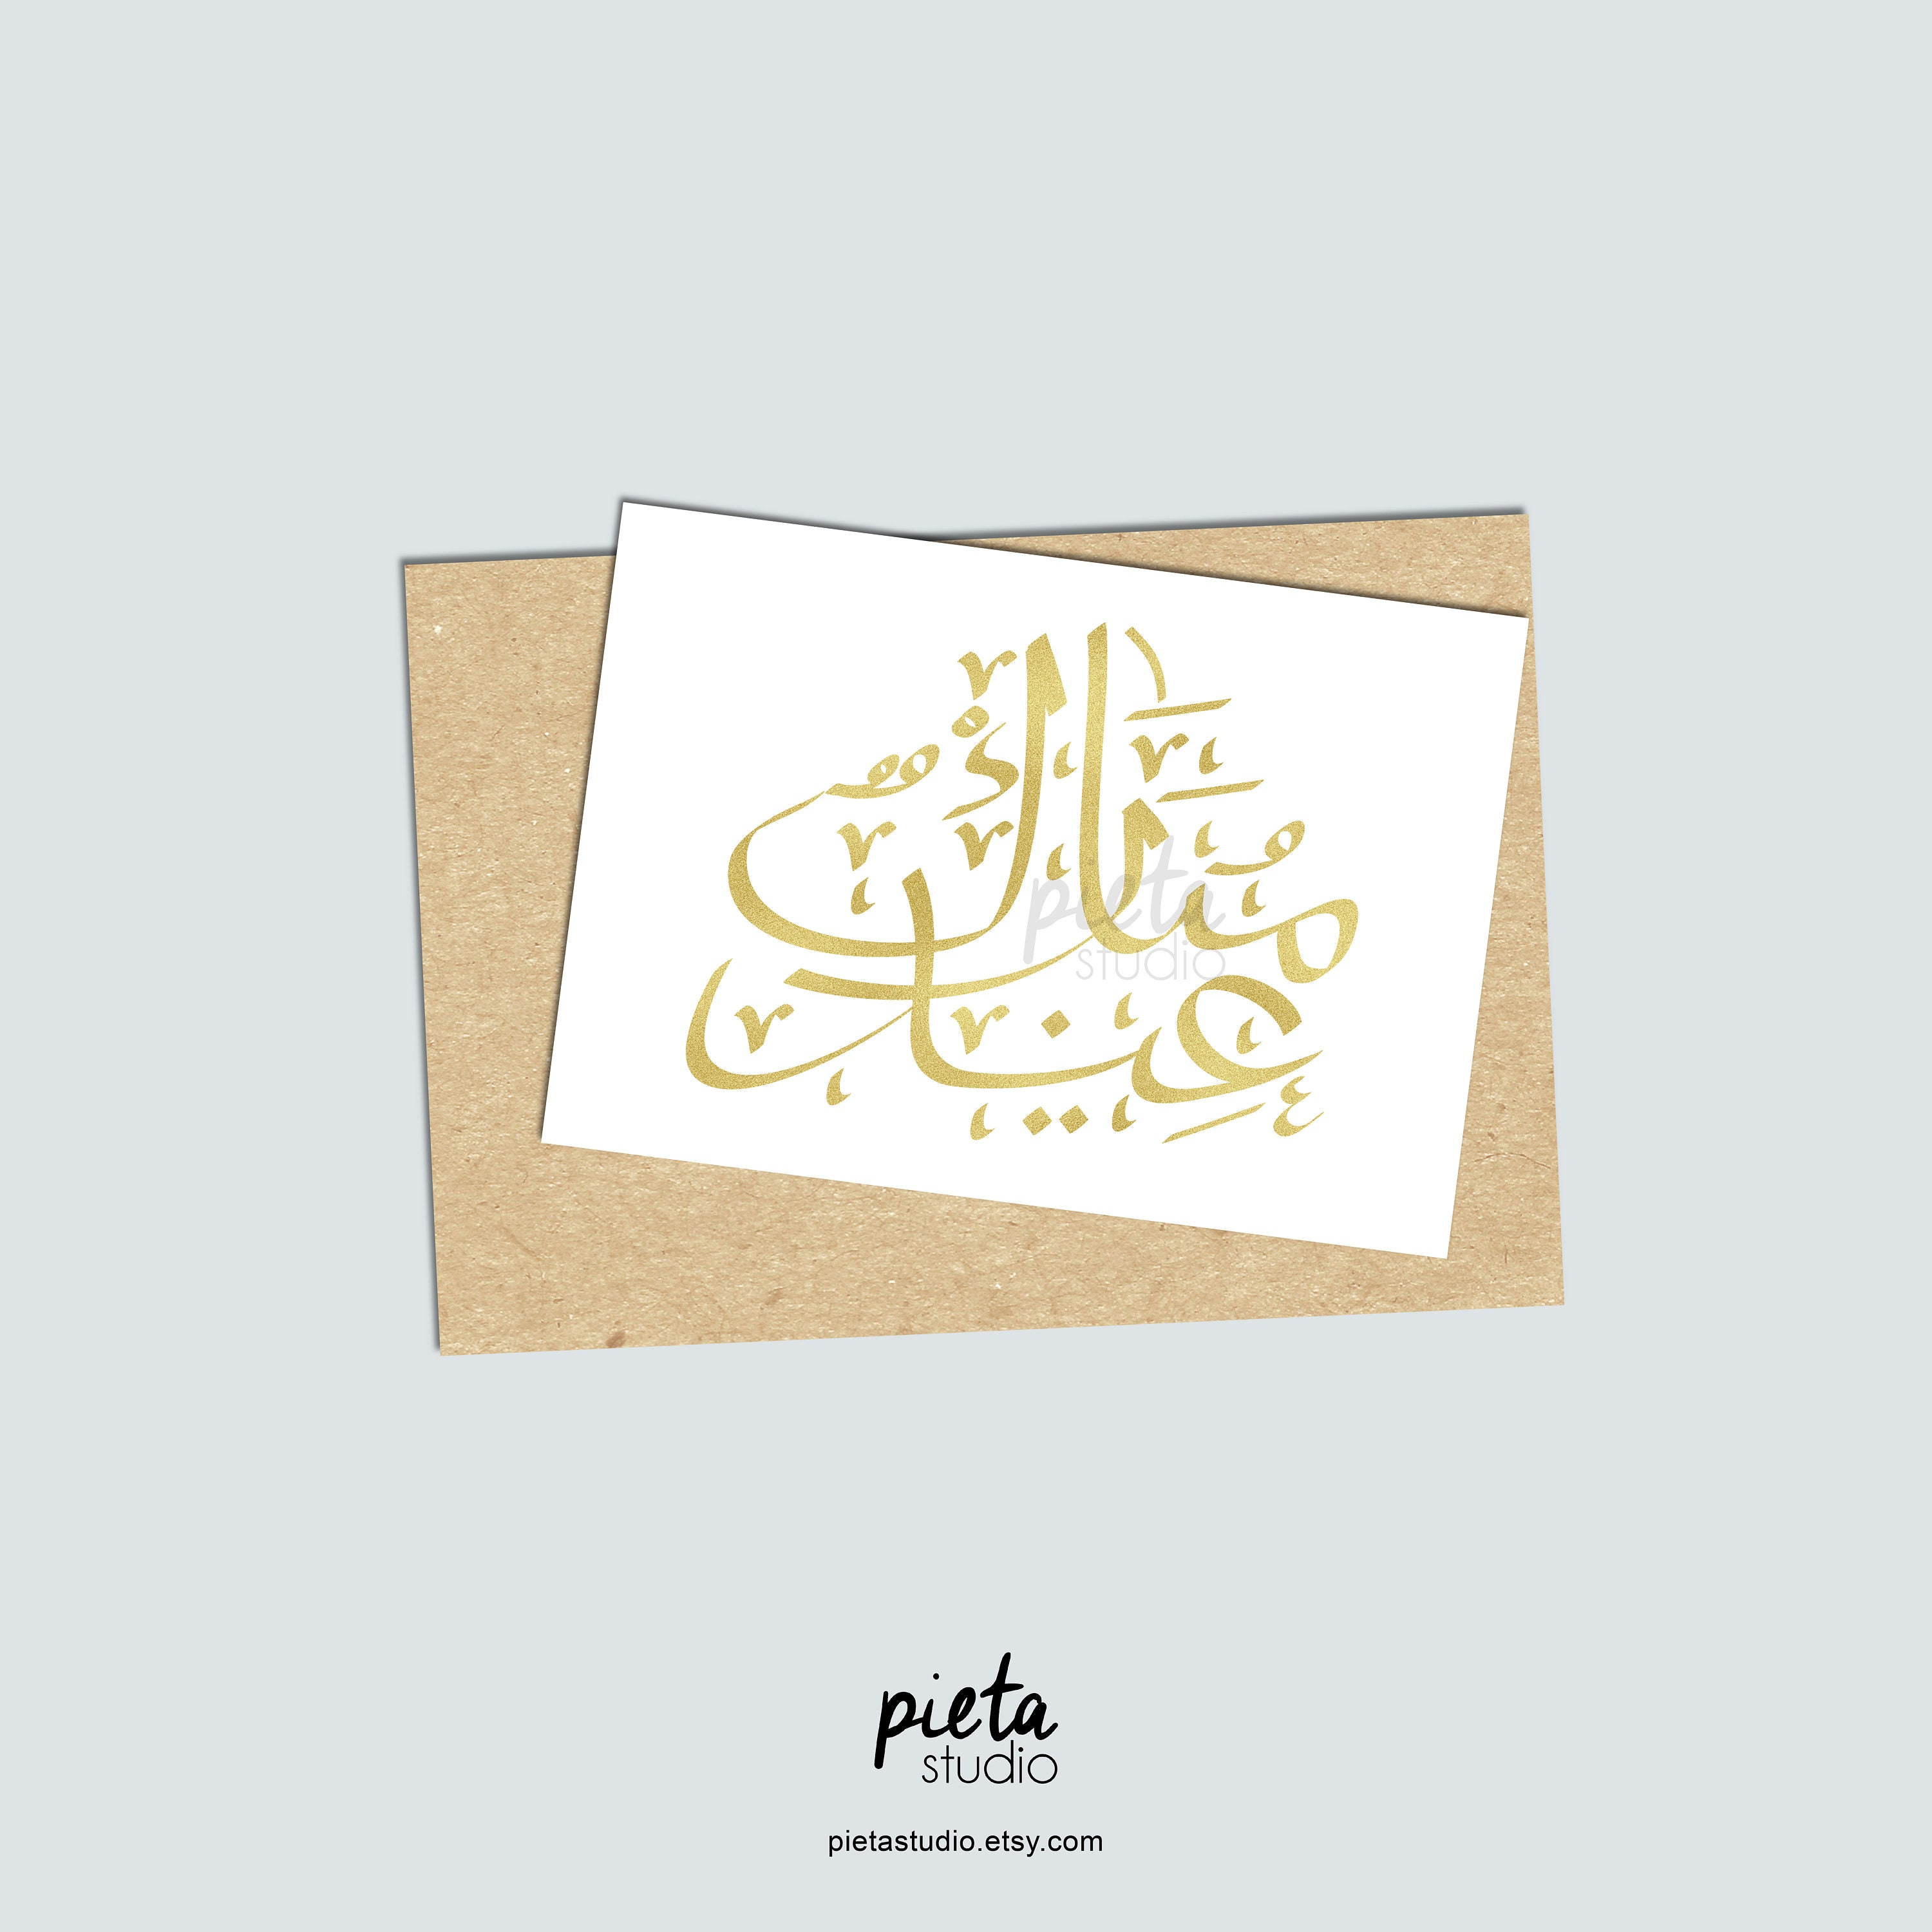 image relating to Ramadan Cards Printable identified as Eid Mubarak Greeting Card, Ramadan Card, Printable Electronic Document, Ramadhan Calligraphy Scripture Artwork, Islam Muslim Card, Lavish Gold Foil